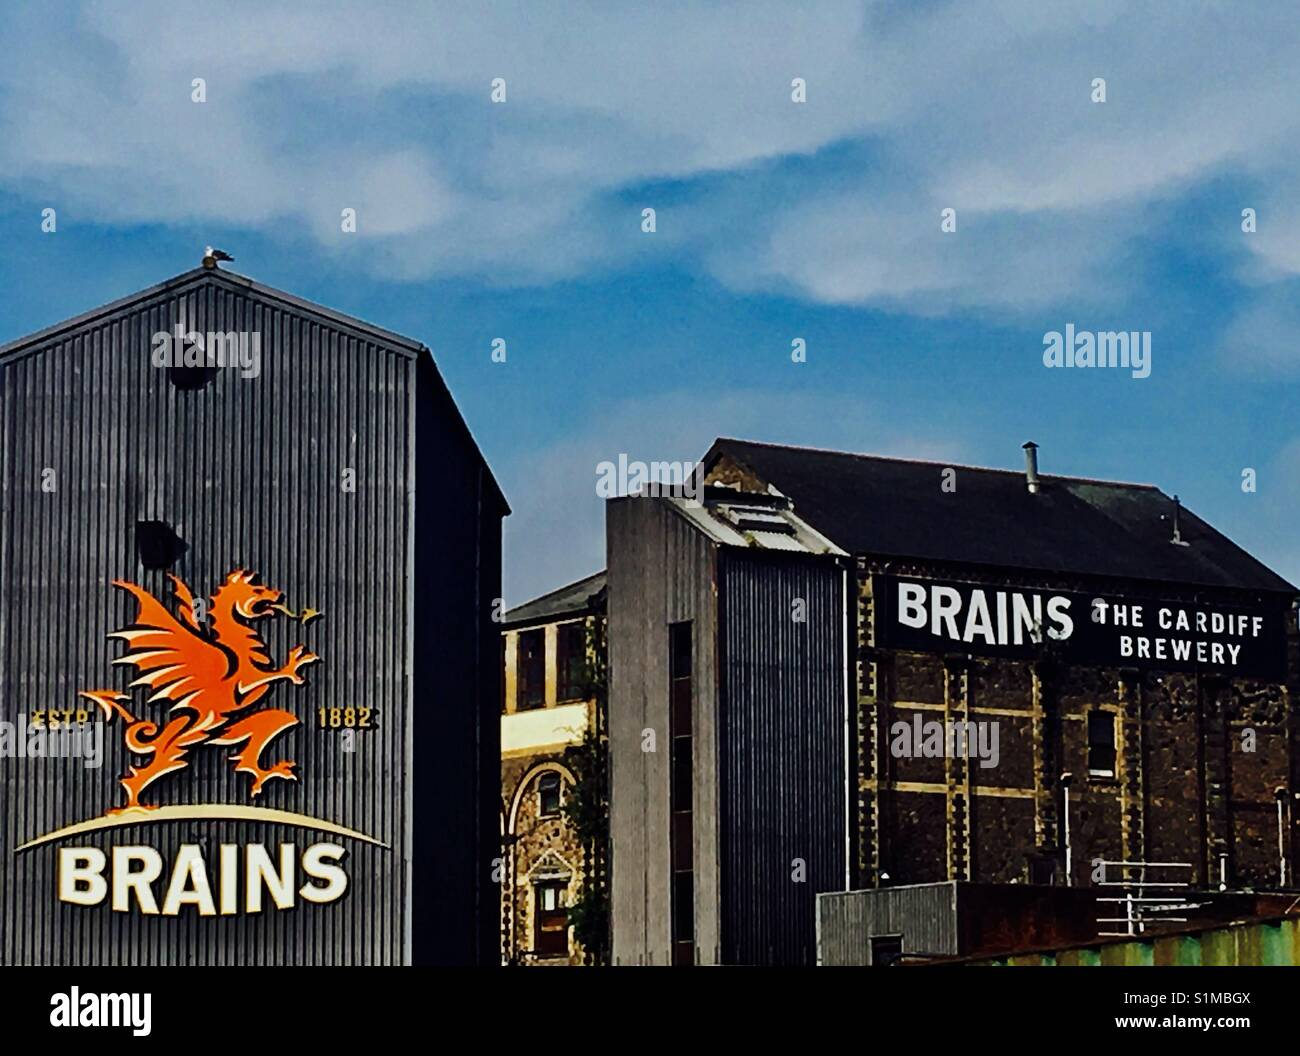 Brains- The Cardiff brewery. - Stock Image